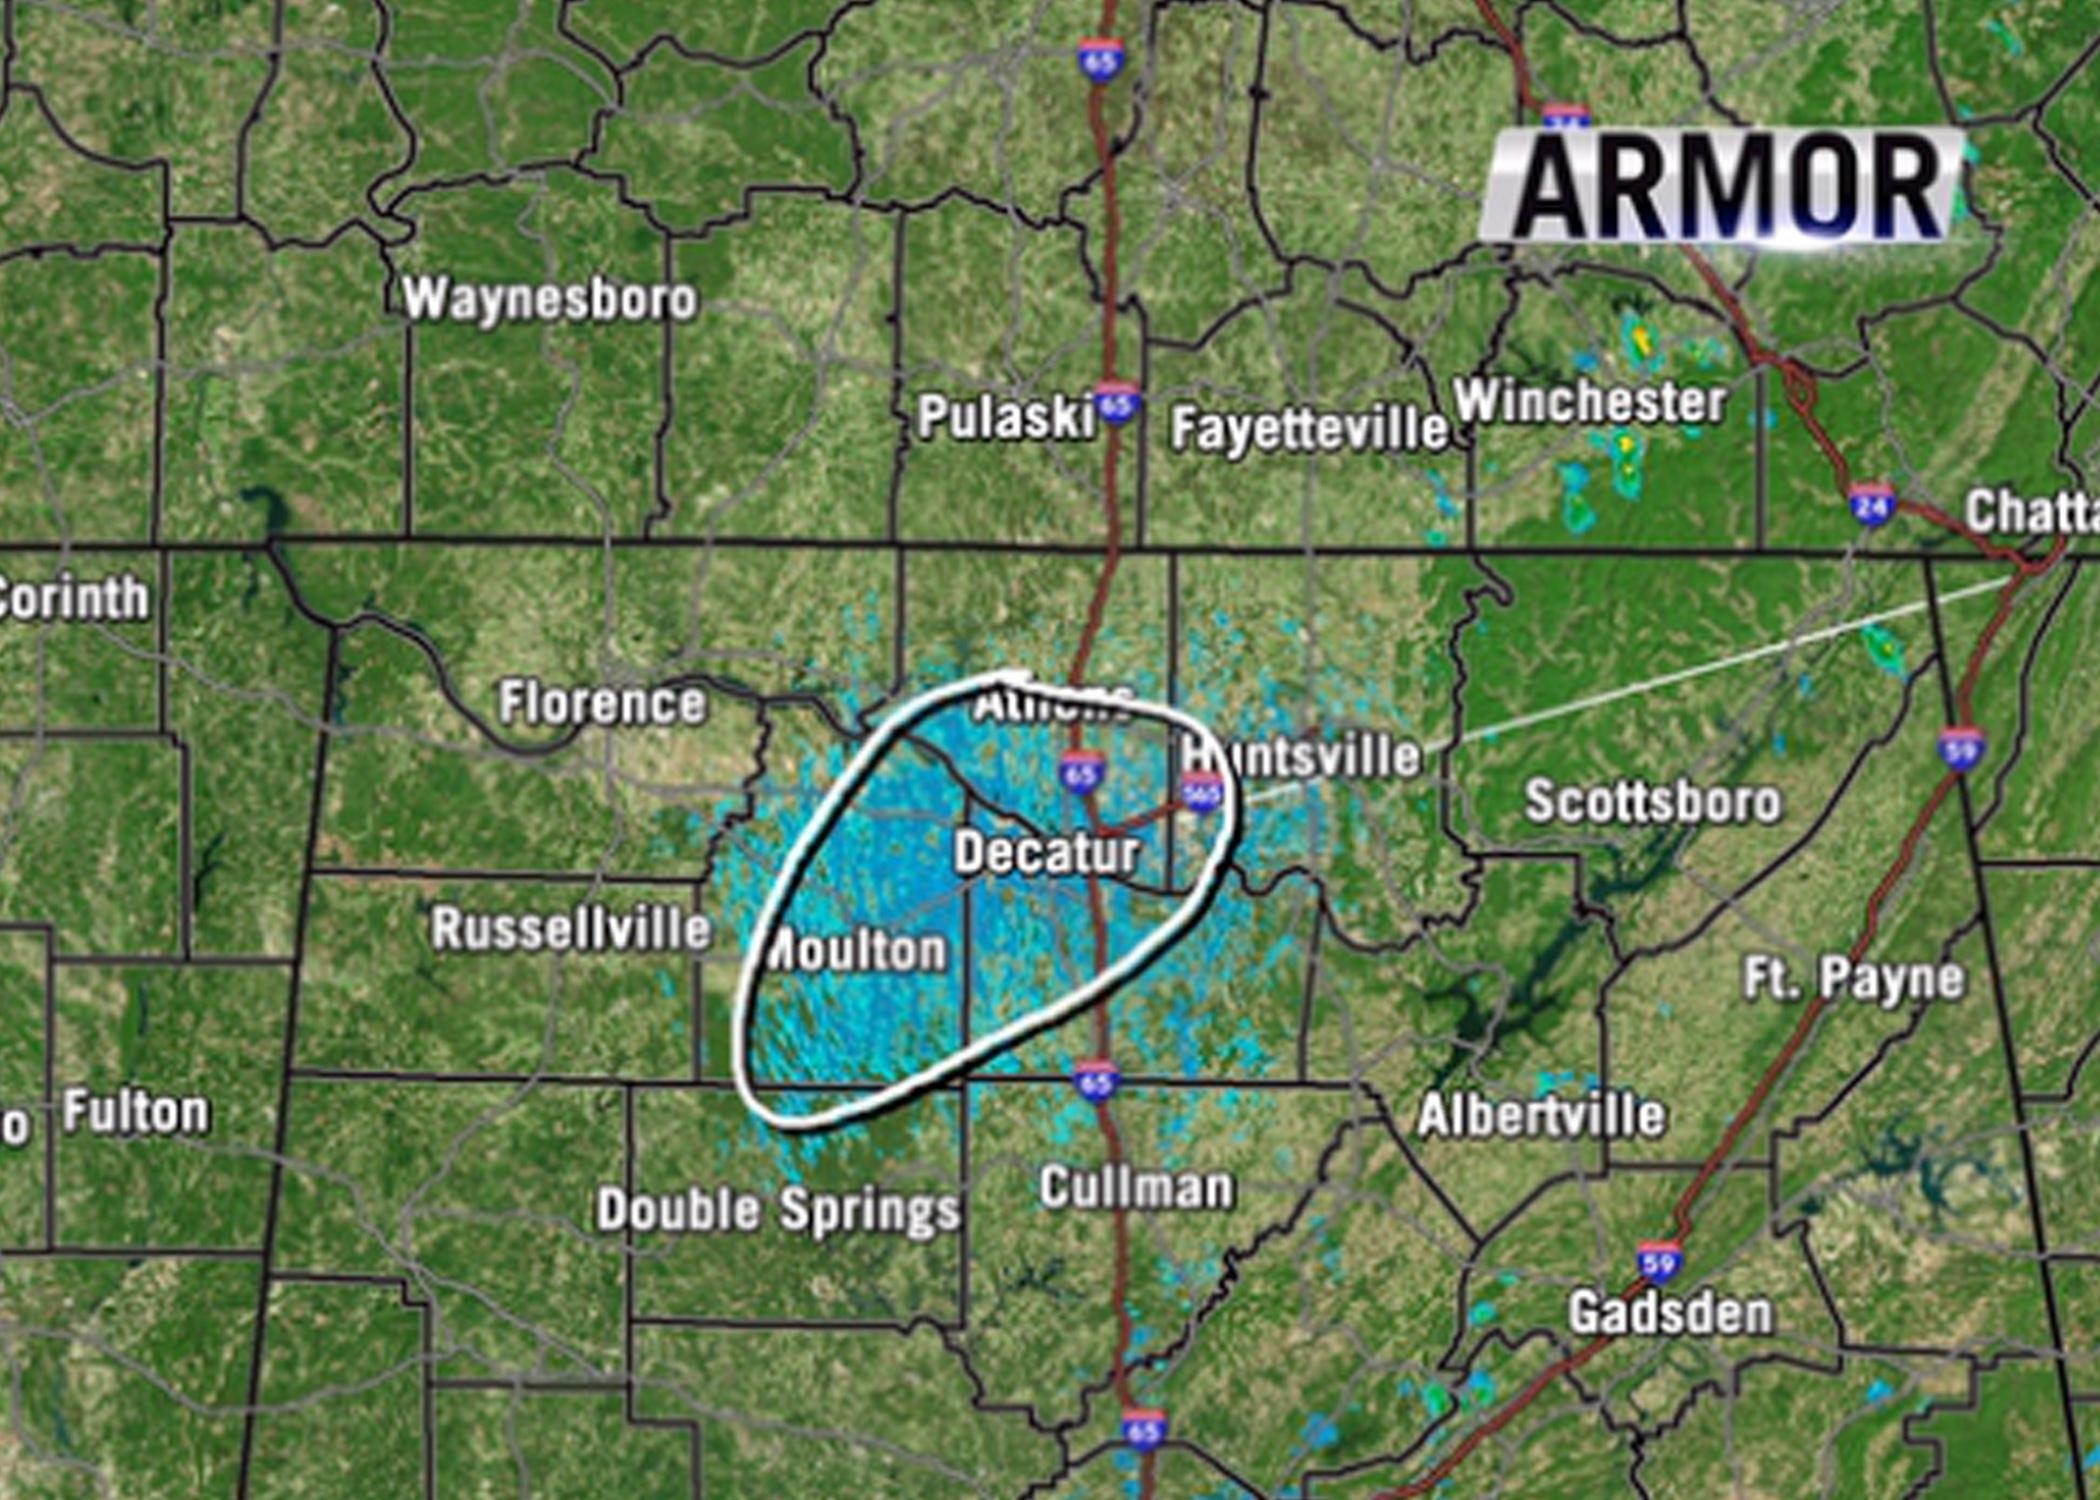 The blue mass circled over a map of Alabama indicates a high concentration of mayflies that swarmed Sept. 4, 2014, and were caught on weather radar. (Submitted Photo by WHNT/Jason Simpson)